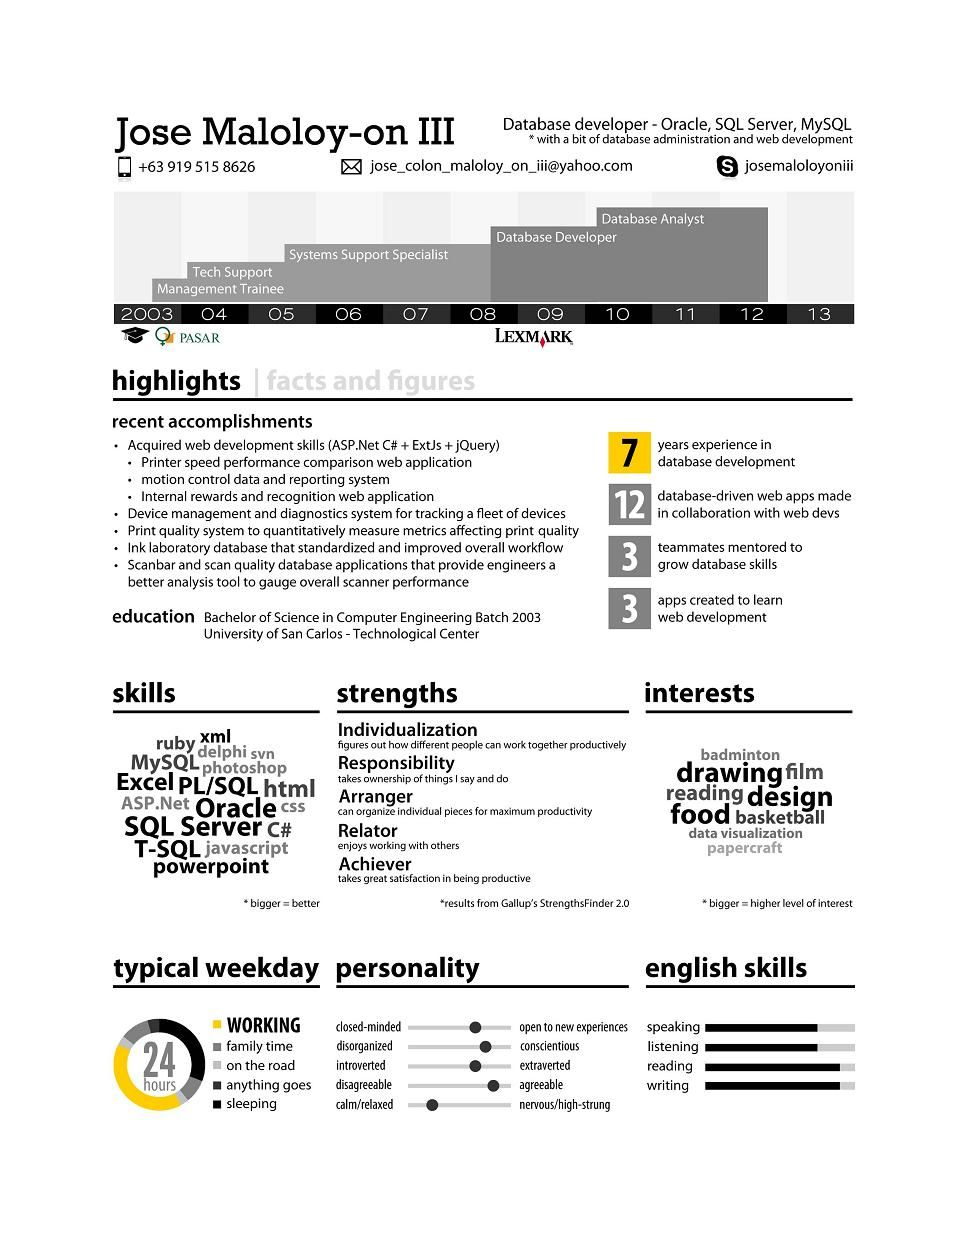 Infographic Resume Of Jose Maloloy On III, Database Analyst/Developer With  Secondary Skills In Database Administration And .Net Web Development